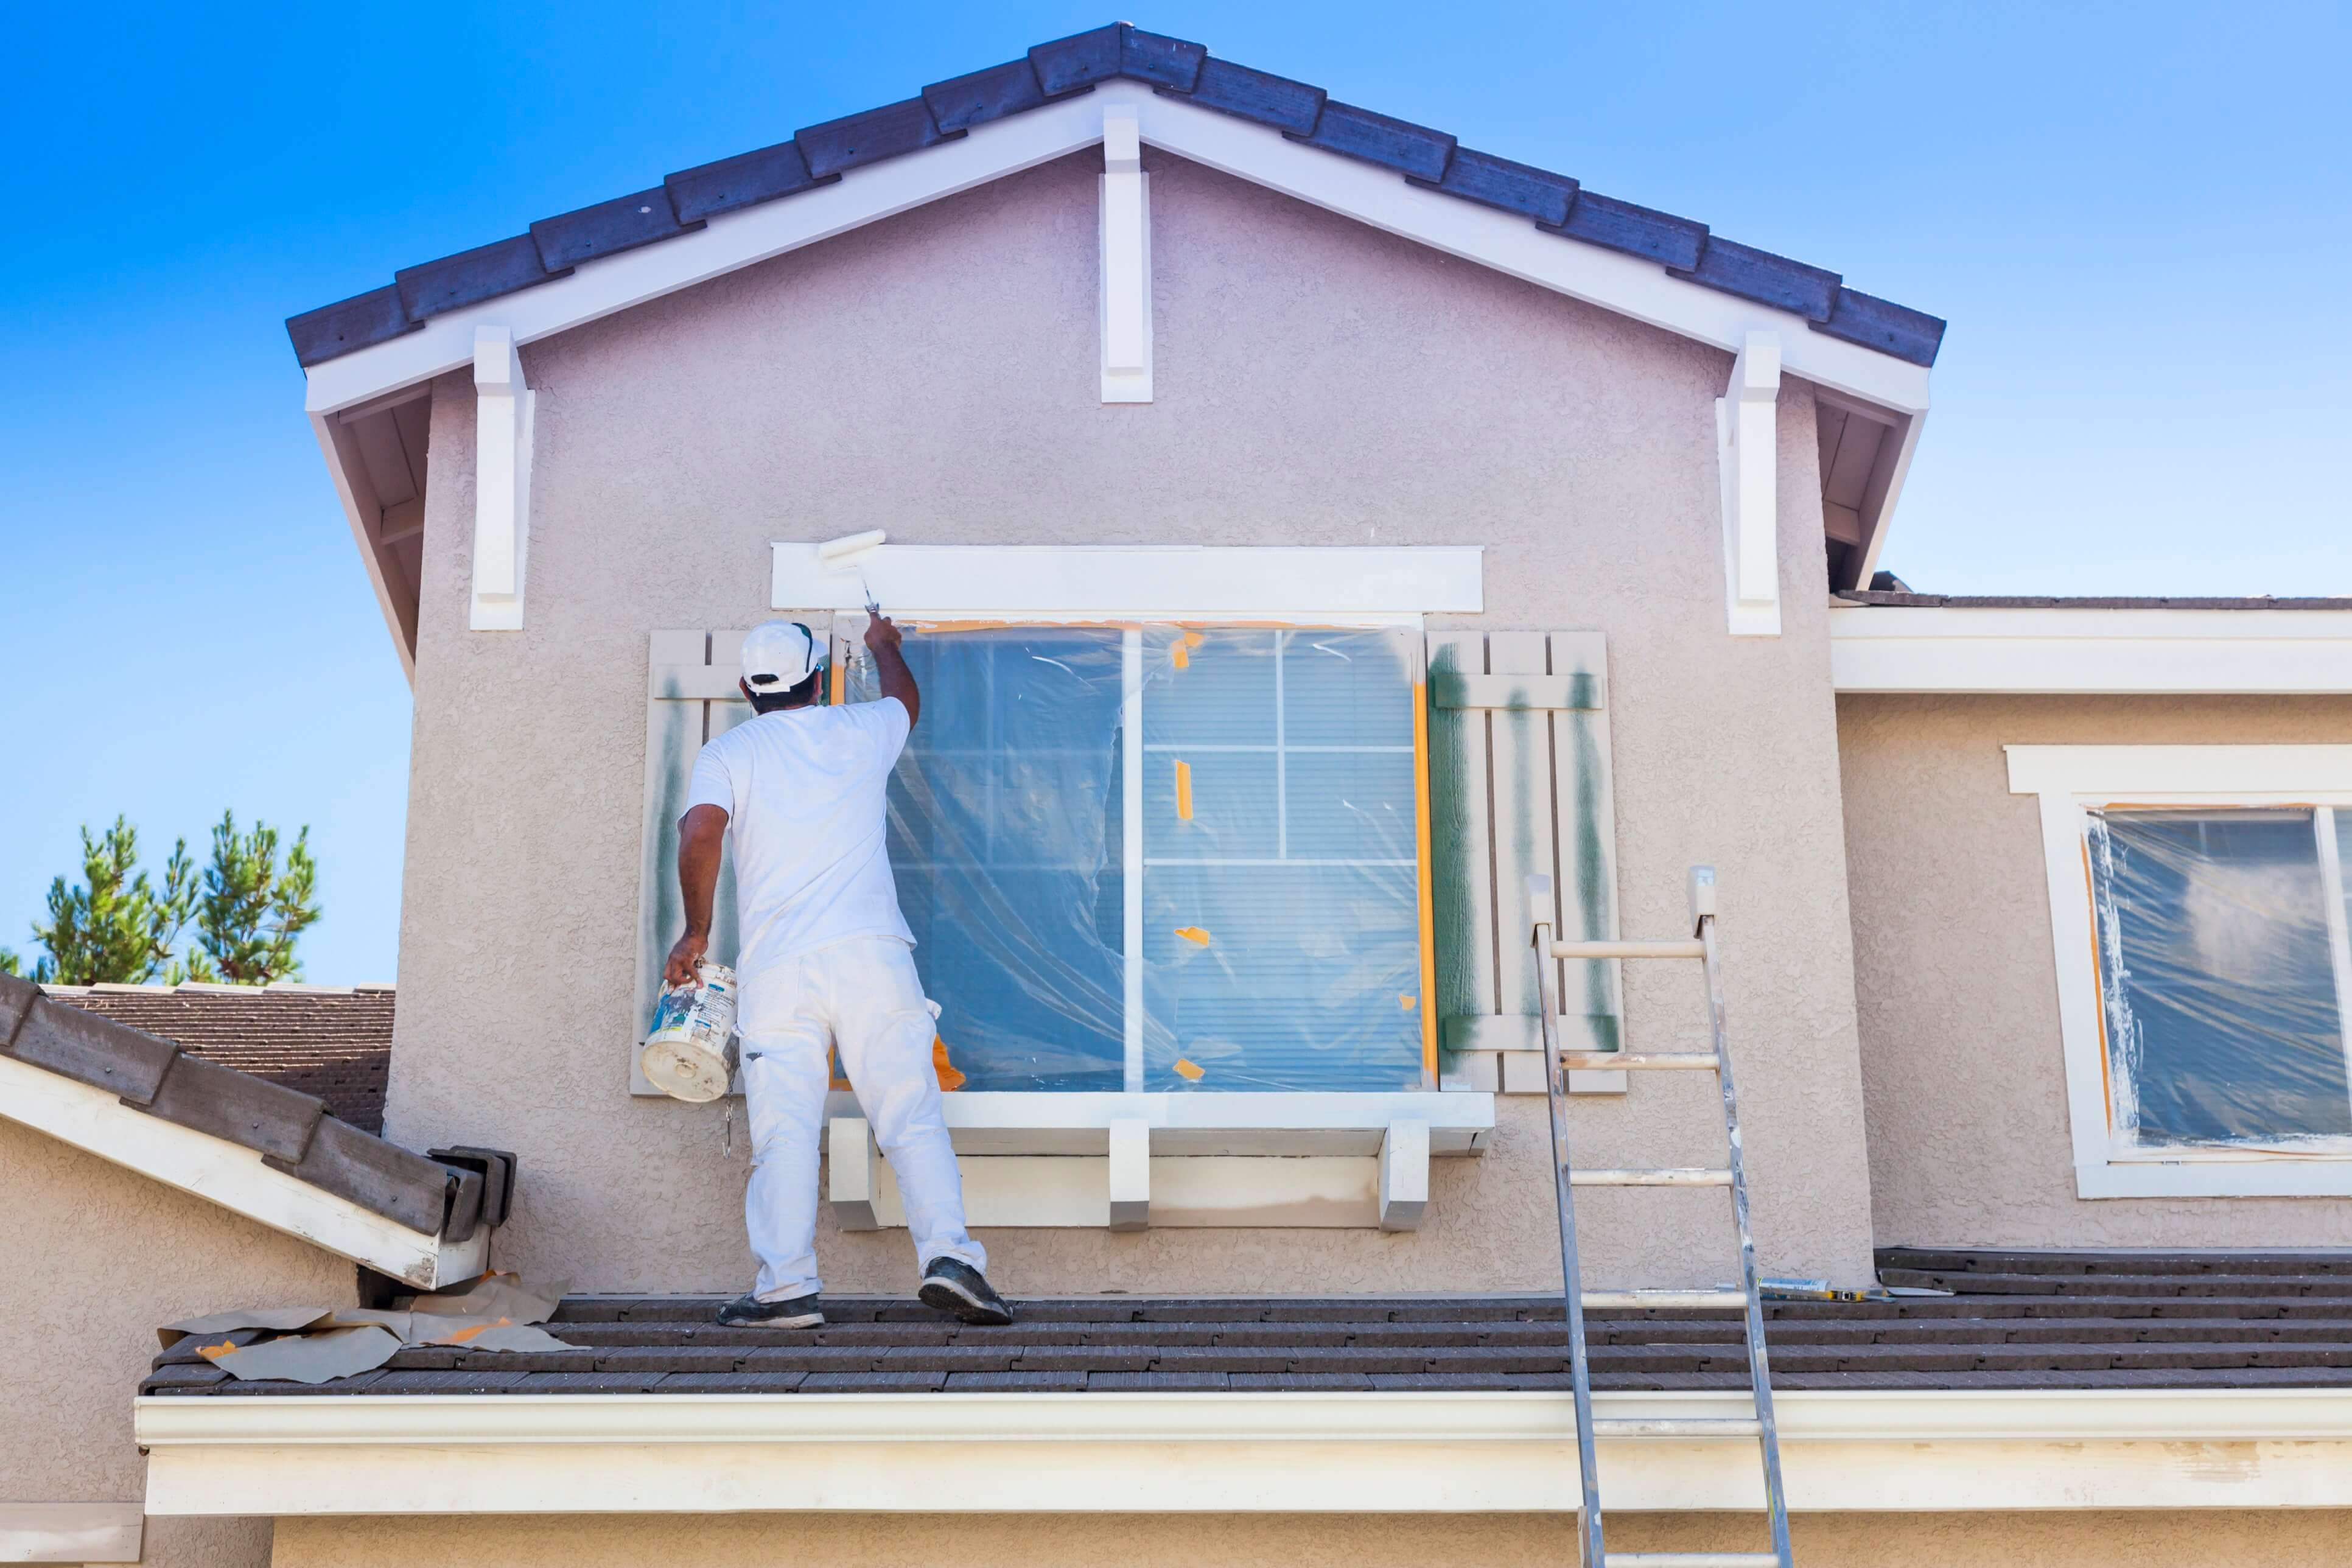 When is the Best Time to Hire a Painting Company to Paint the Exterior of your Home?